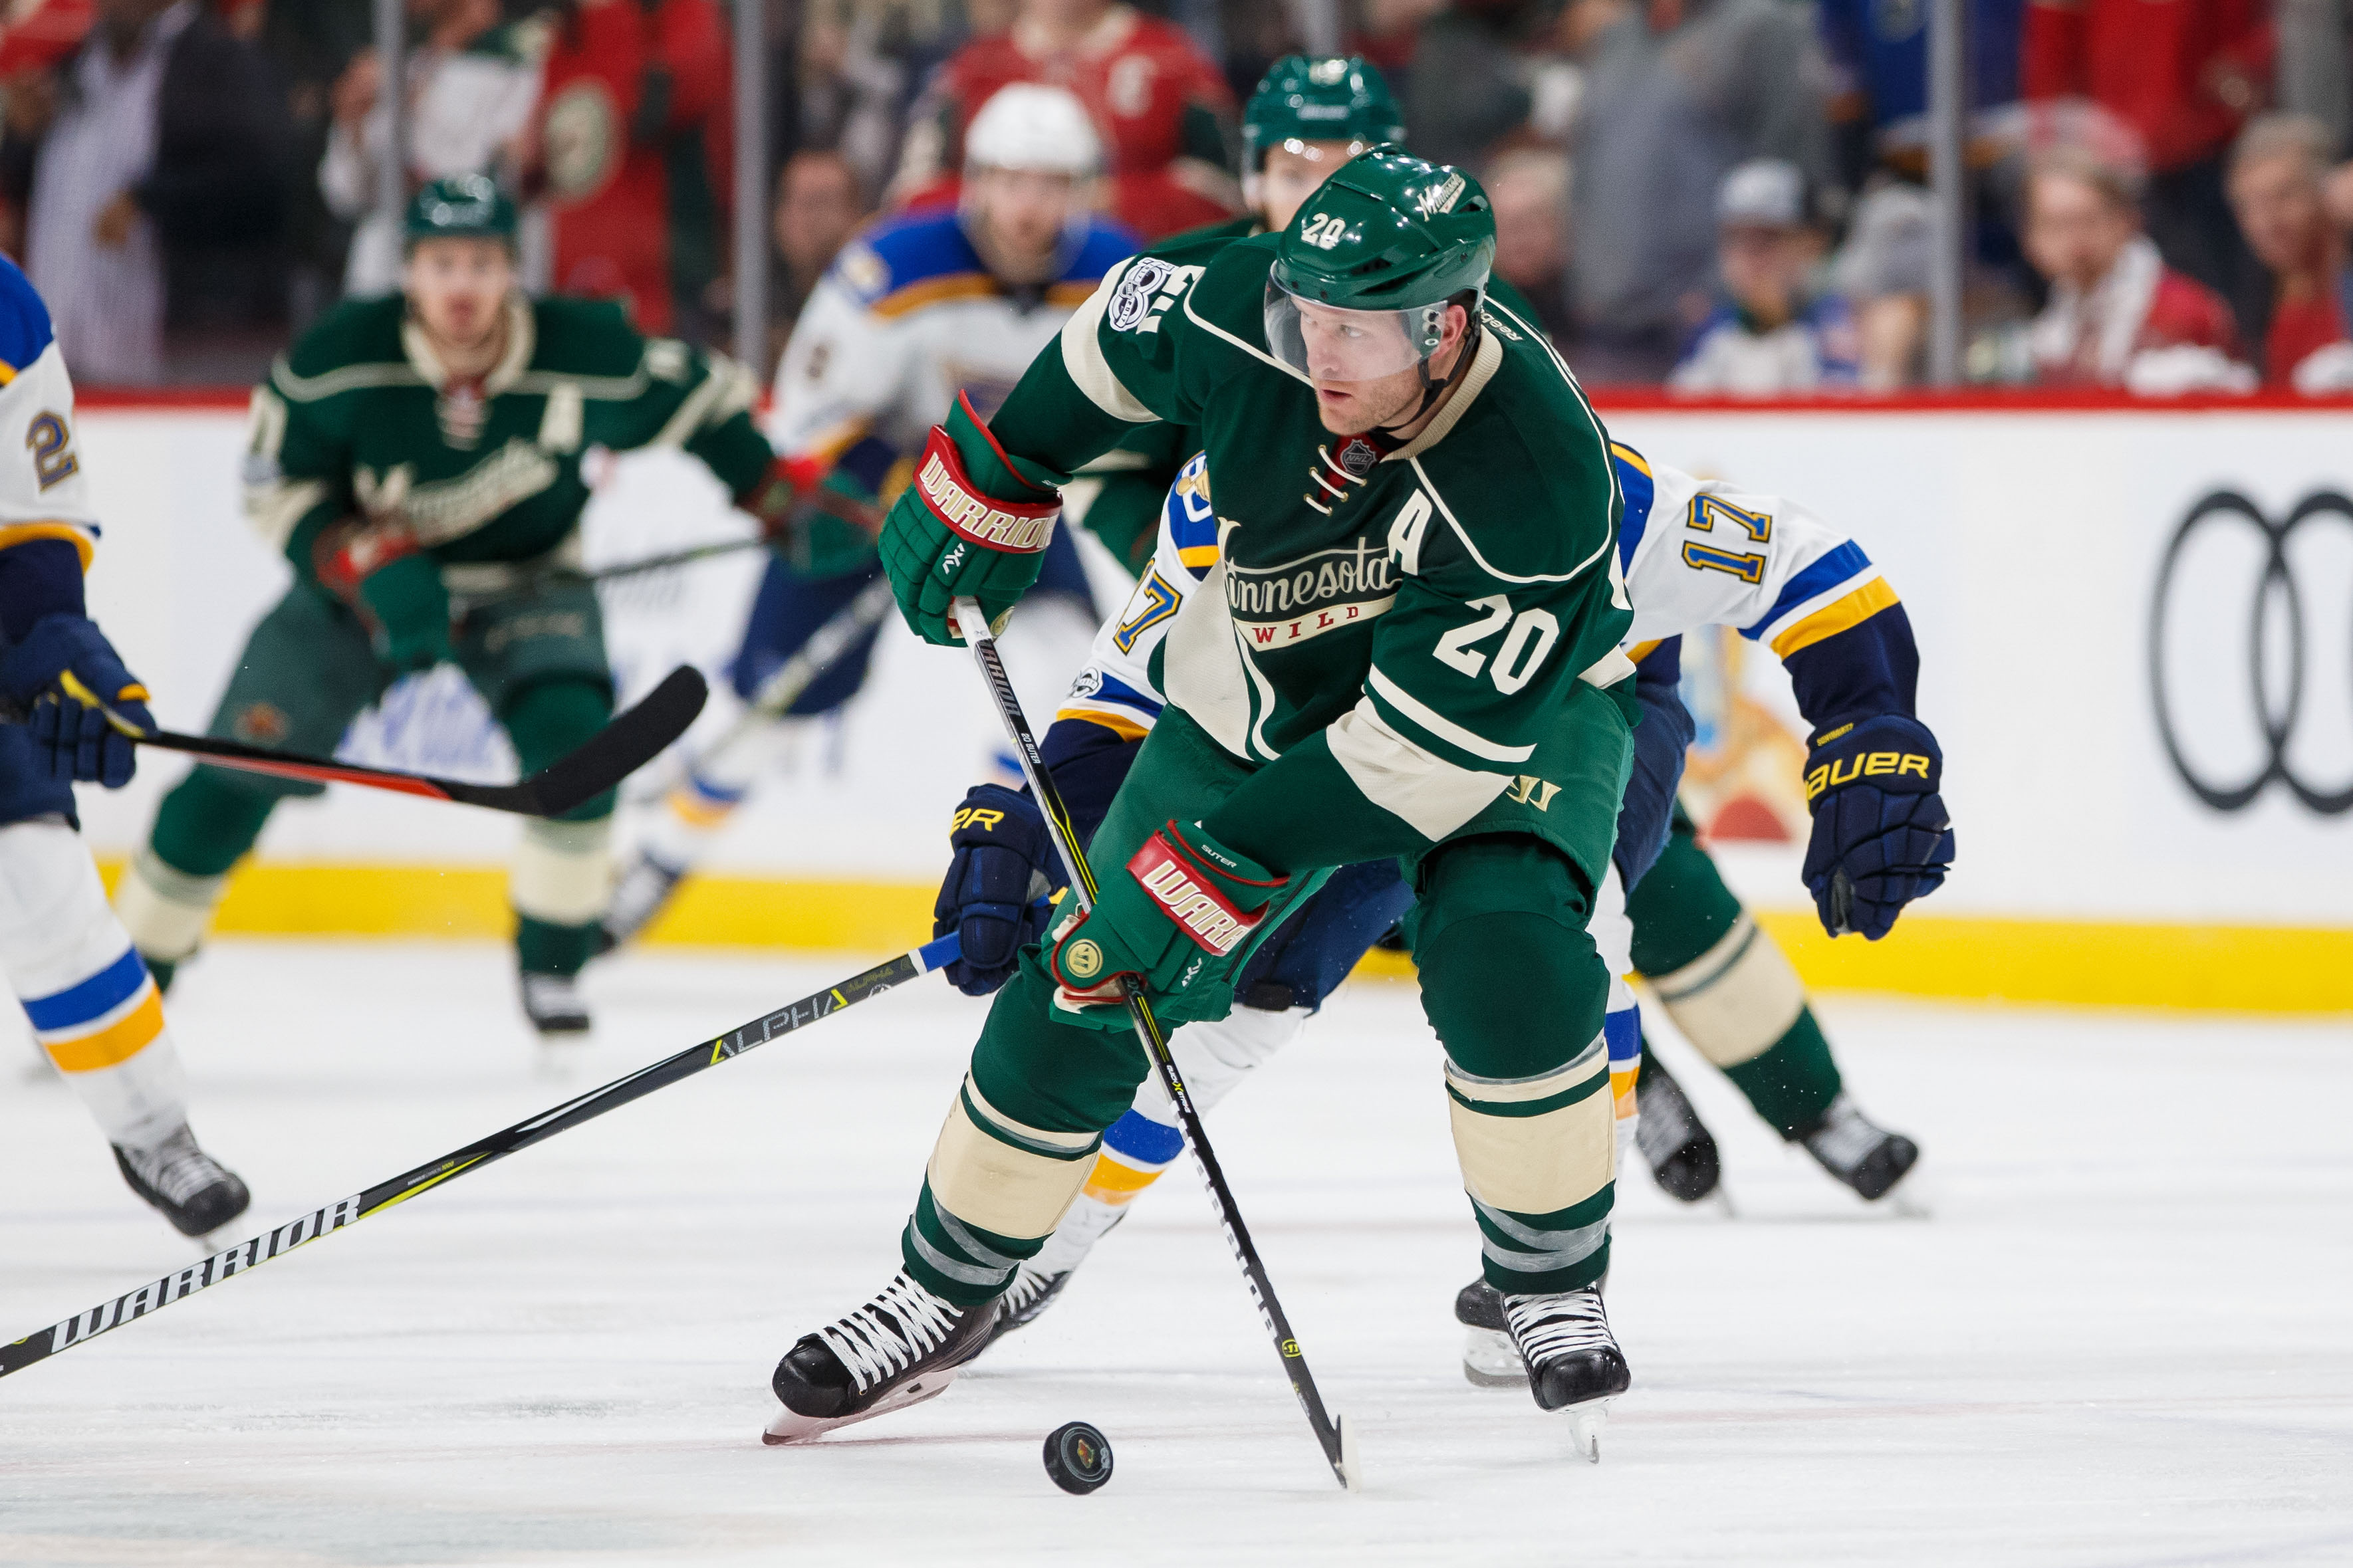 10030171-nhl-stanley-cup-playoffs-st.-louis-blues-at-minnesota-wild